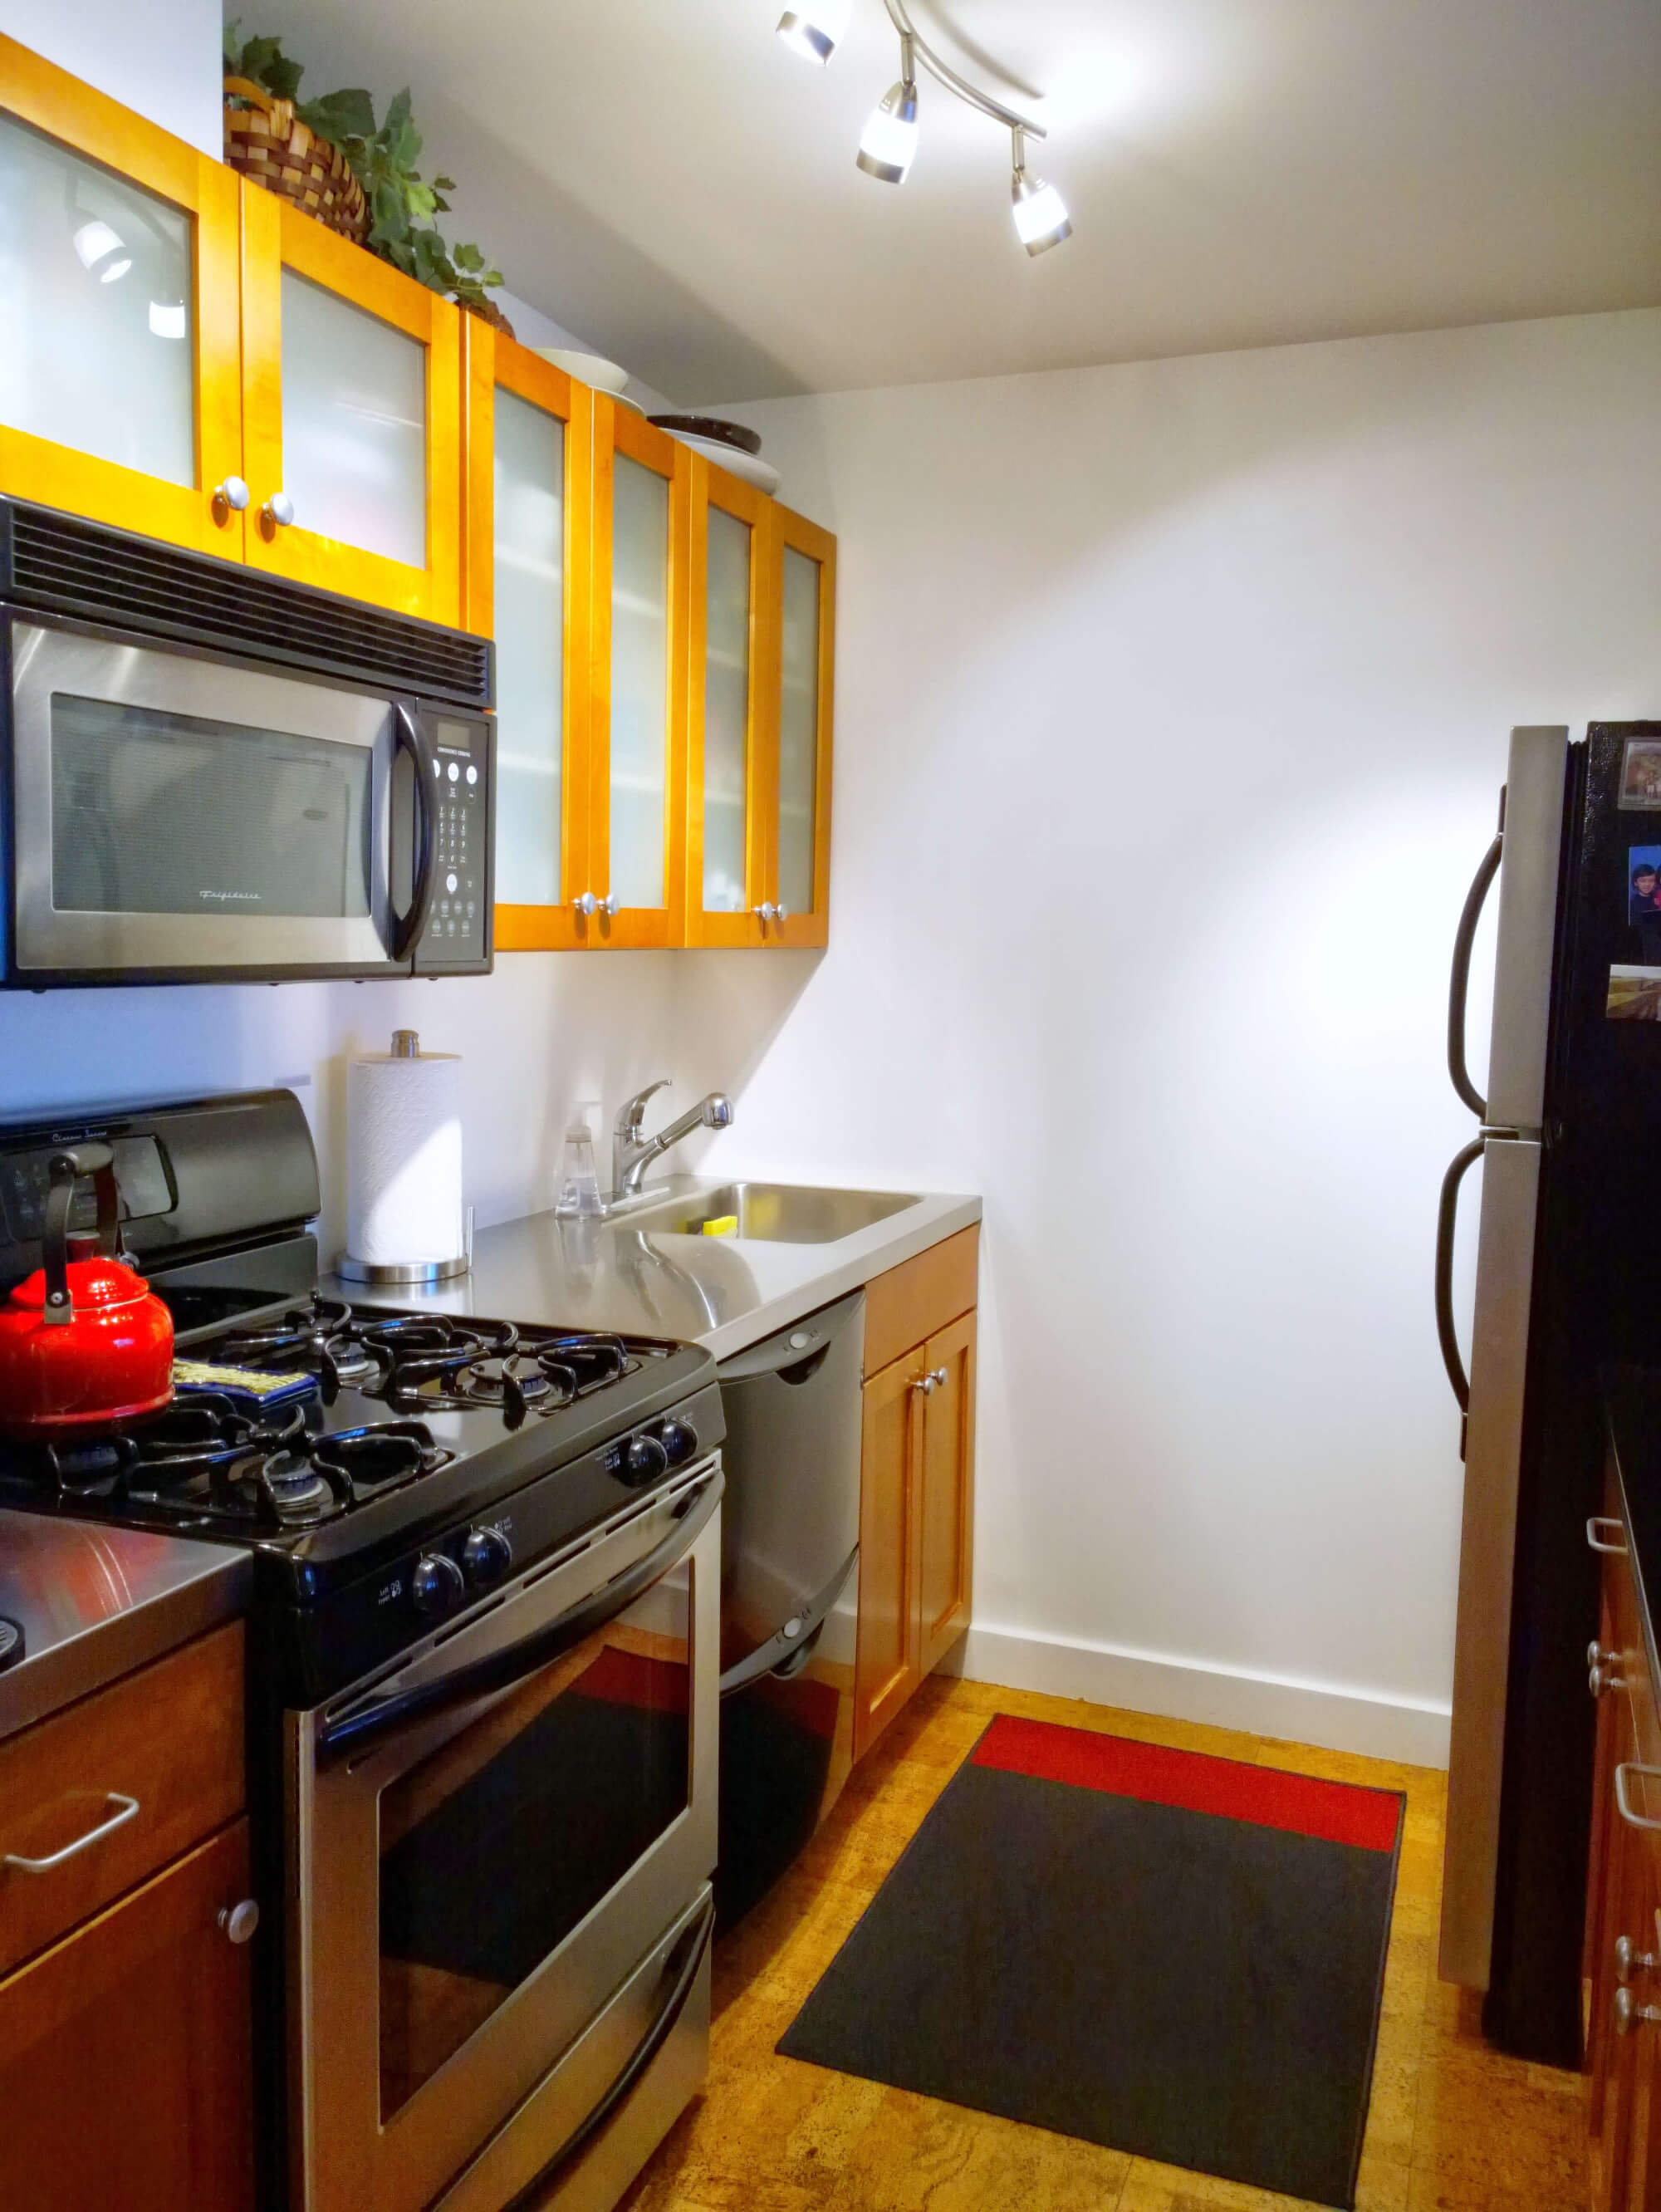 jersey-city-apartment-remodel-before-remodel-kitchen